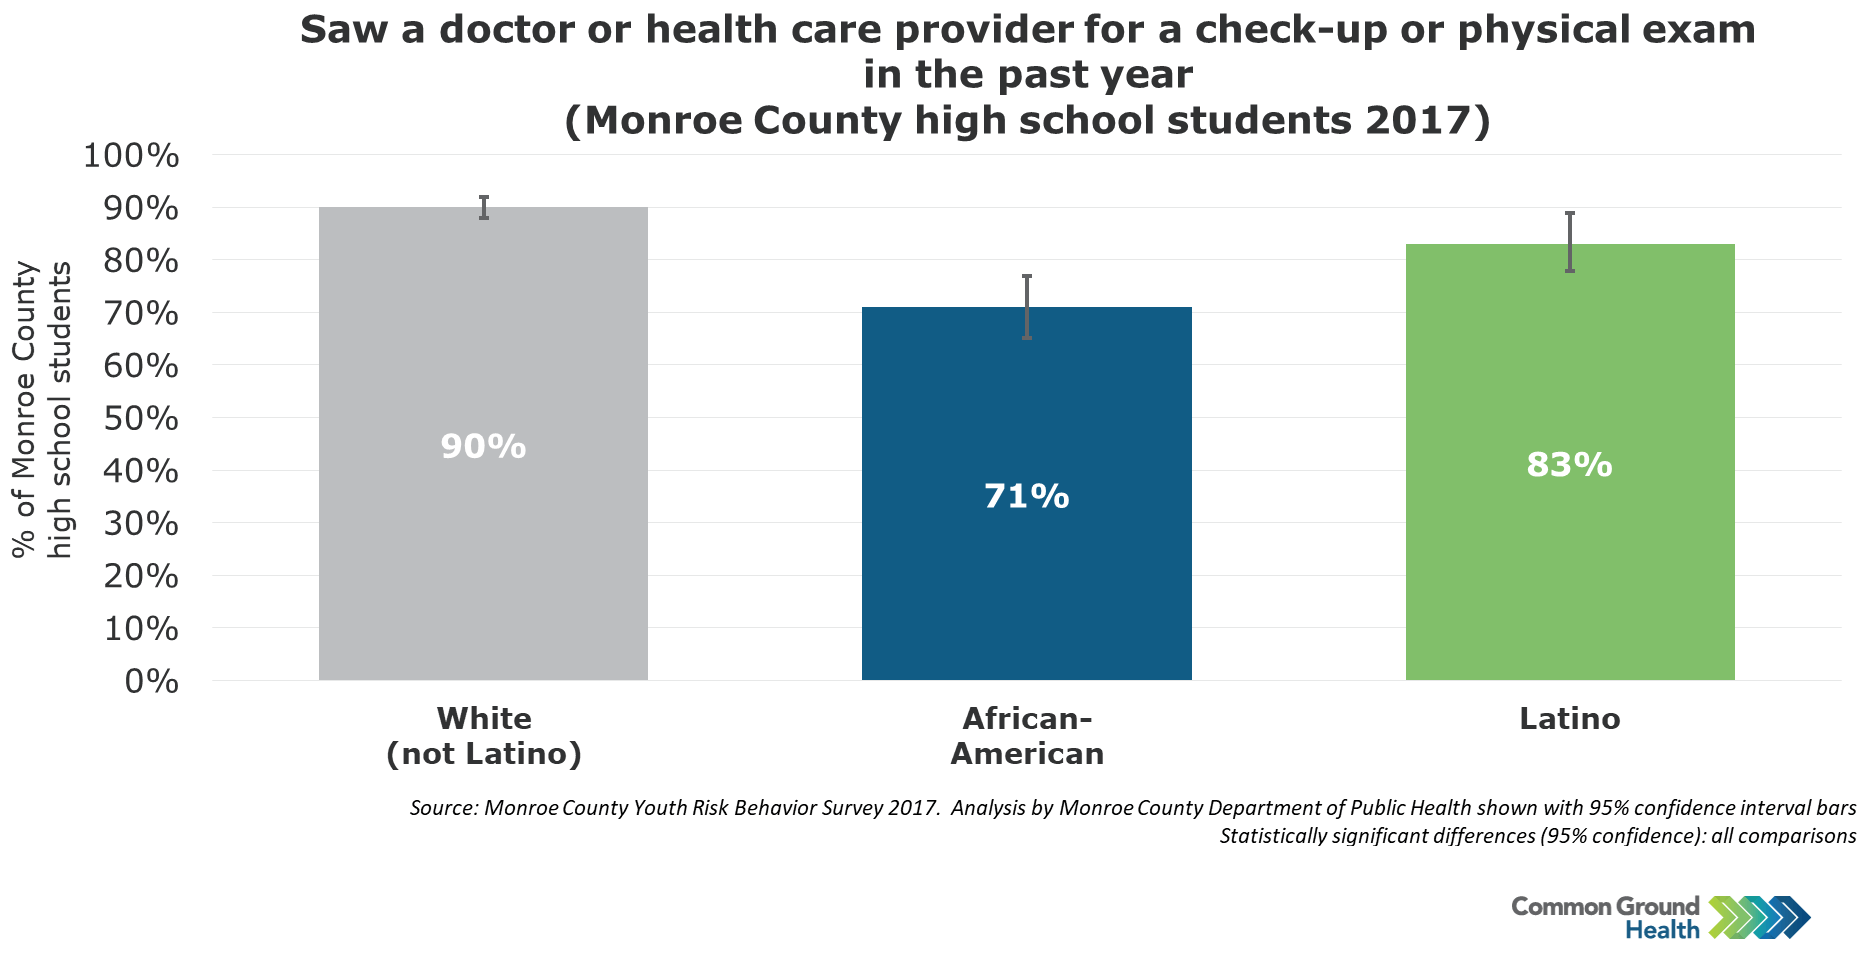 High School Students With a Check-up in the Past Year